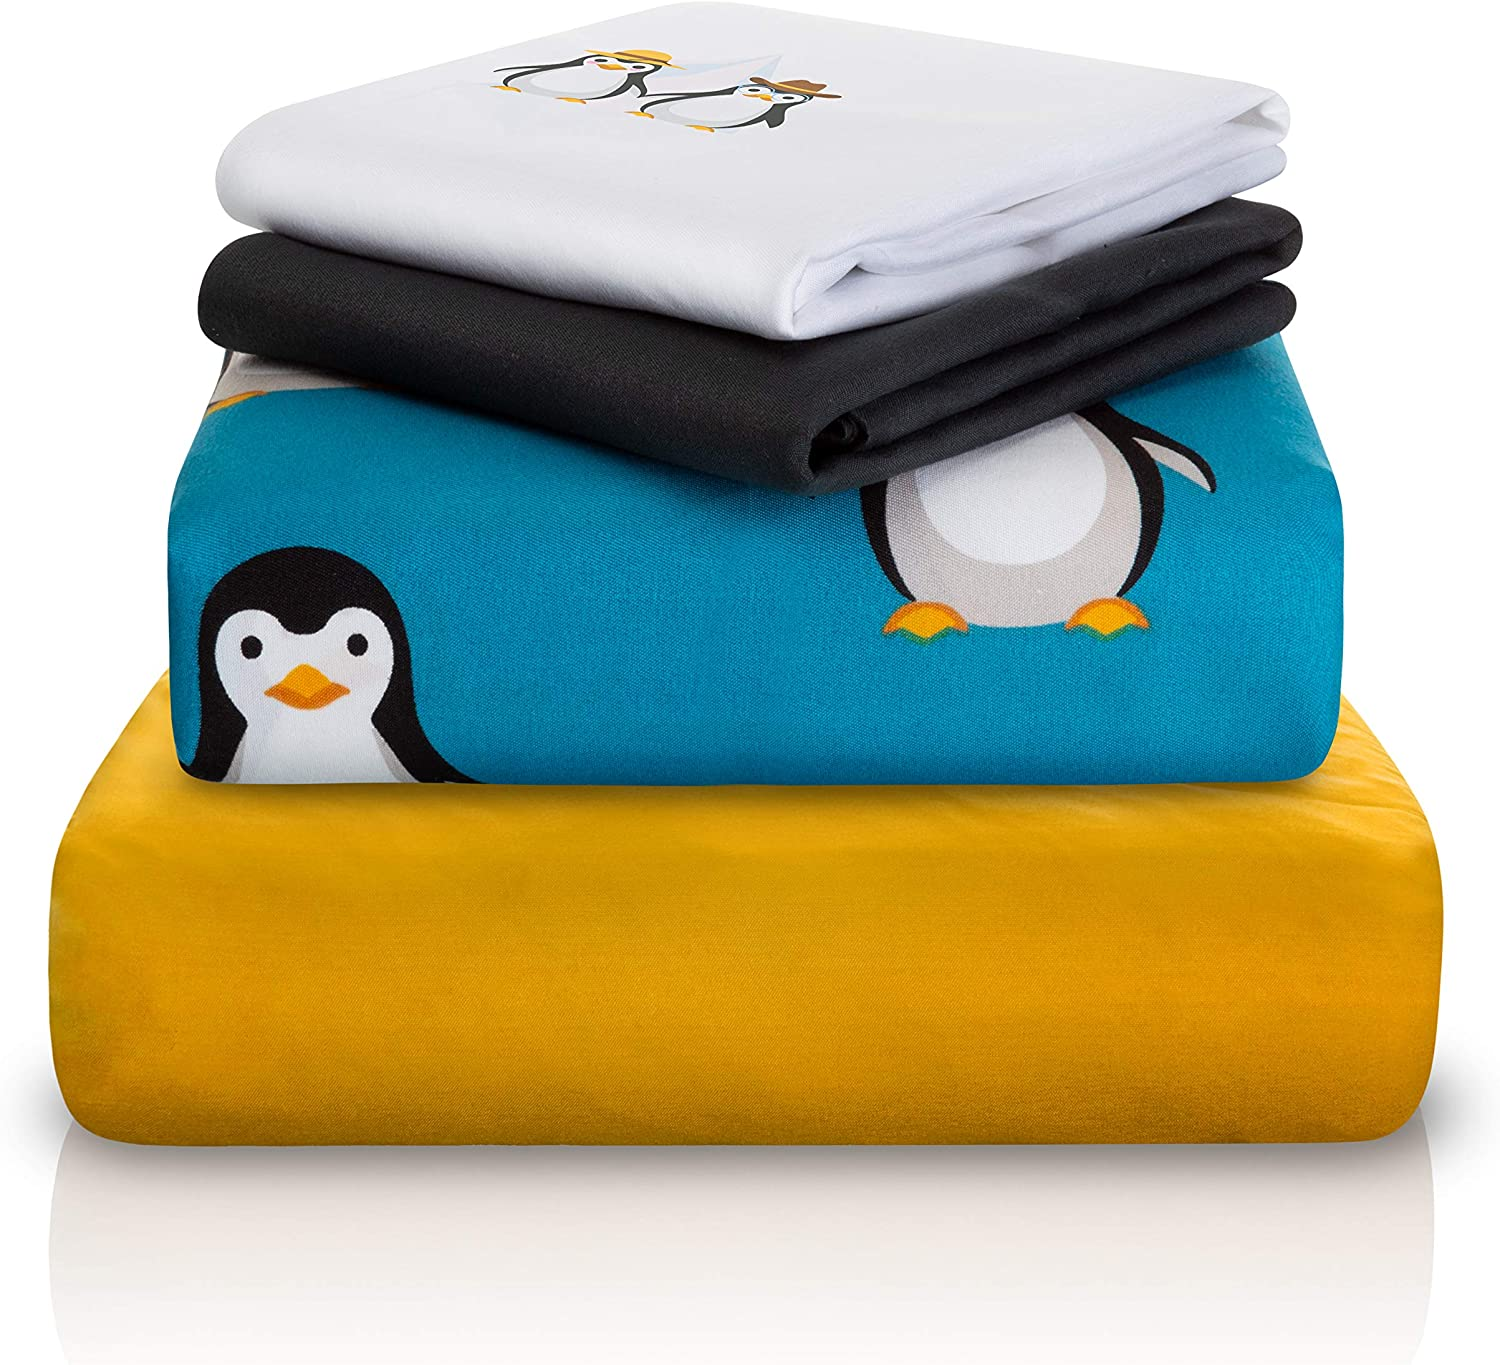 1 Fitted Sheet /& 2 Pillow Cases Double-Brushed Microfiber 15 Deep Durable Super-Soft Chital Full Bed Sheet Set 4 Pc Penguin Themed Kids Bedding Set Arctic Animal Collection 1 Flat